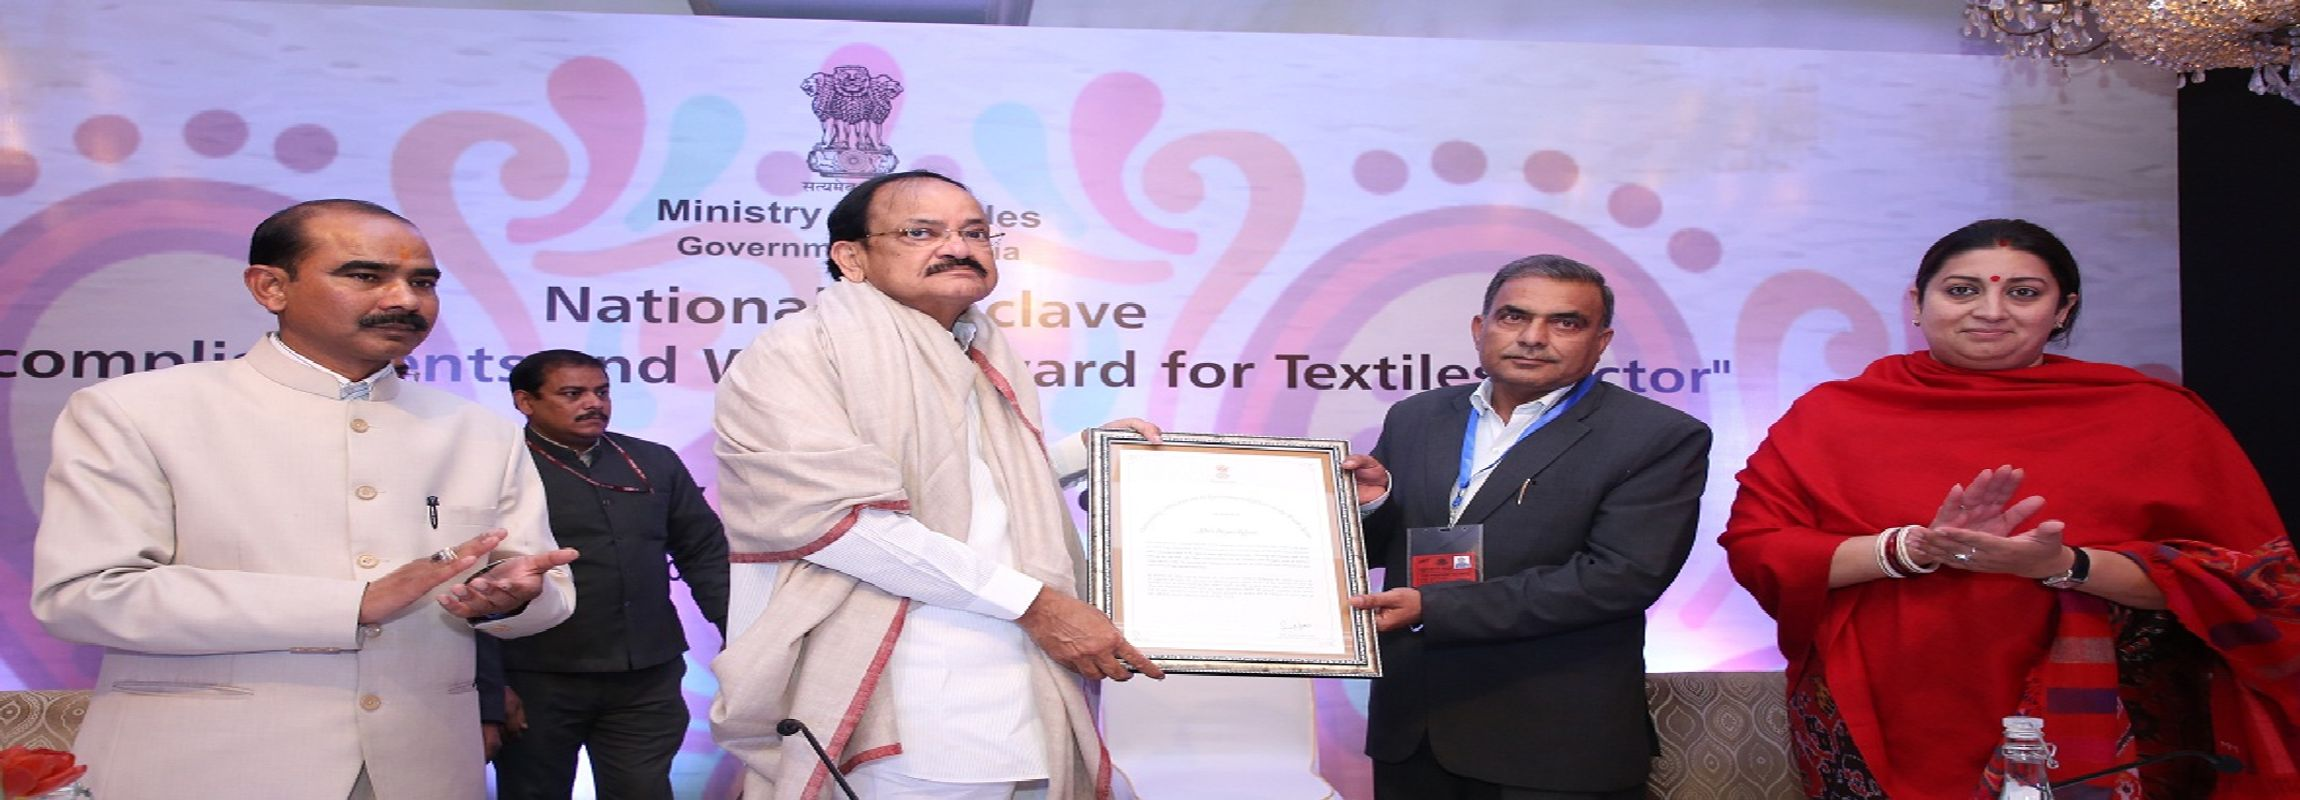 image of Shri Iliyas Khan, Sr. Assistant Director Receiving Award 'Thread of Excellence' from Hon'ble Vice President of India.